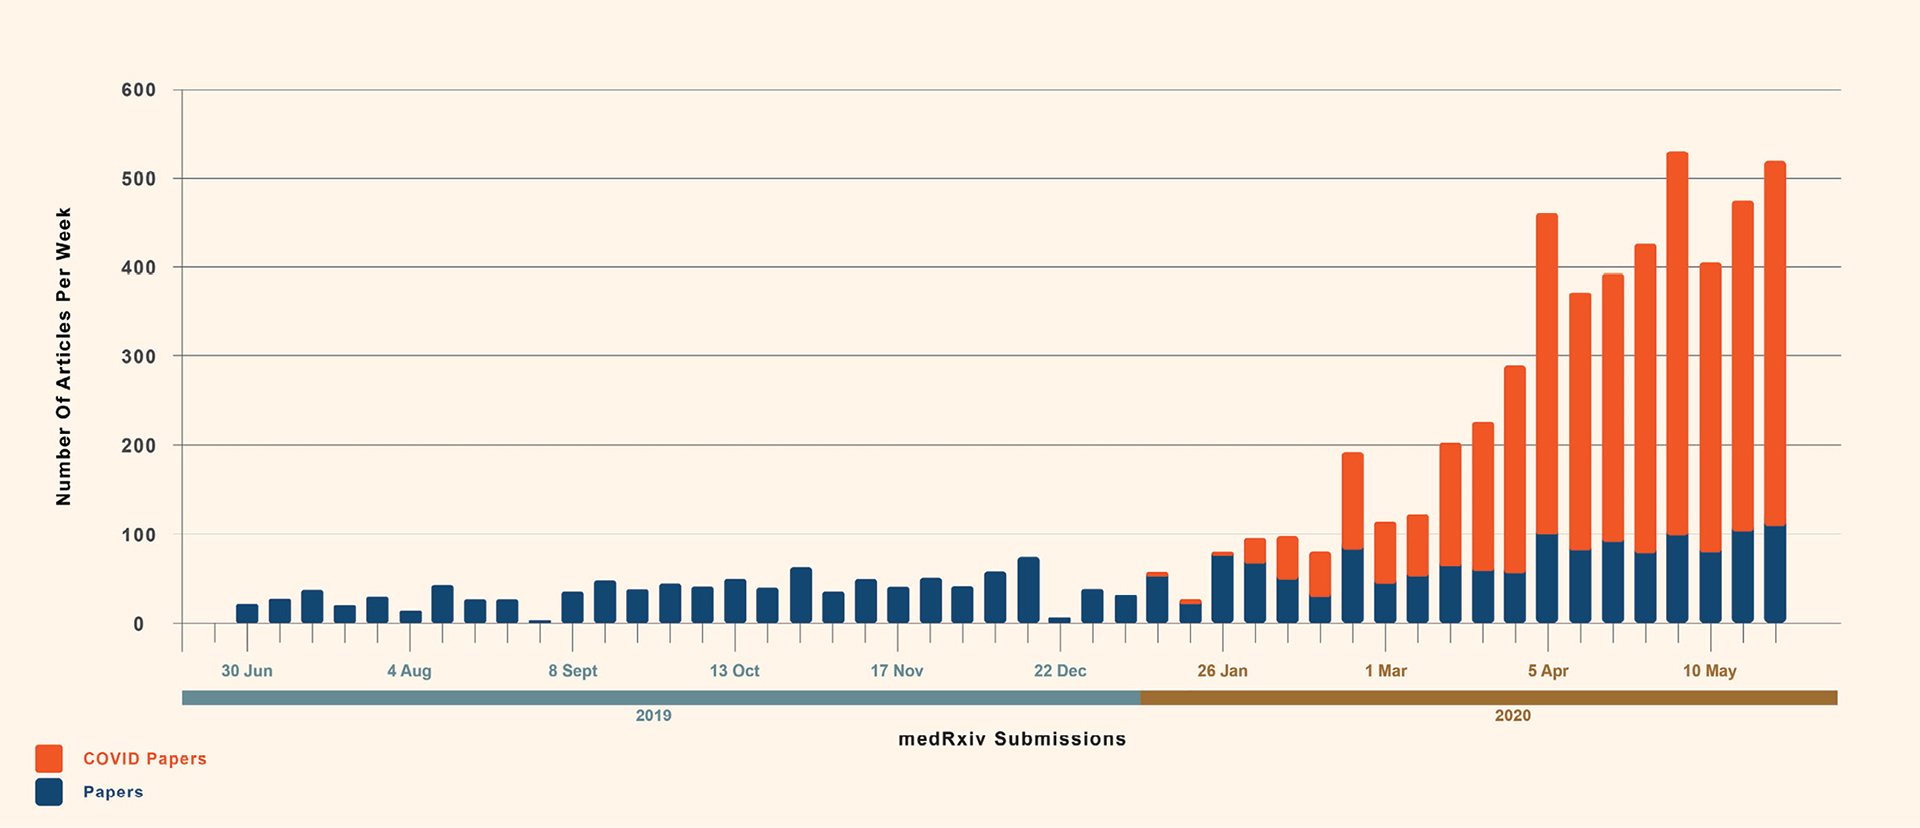 Graph showing that in addition to peer-reviewed articles, many preprints related to COVID-19 have been released during the lockdown